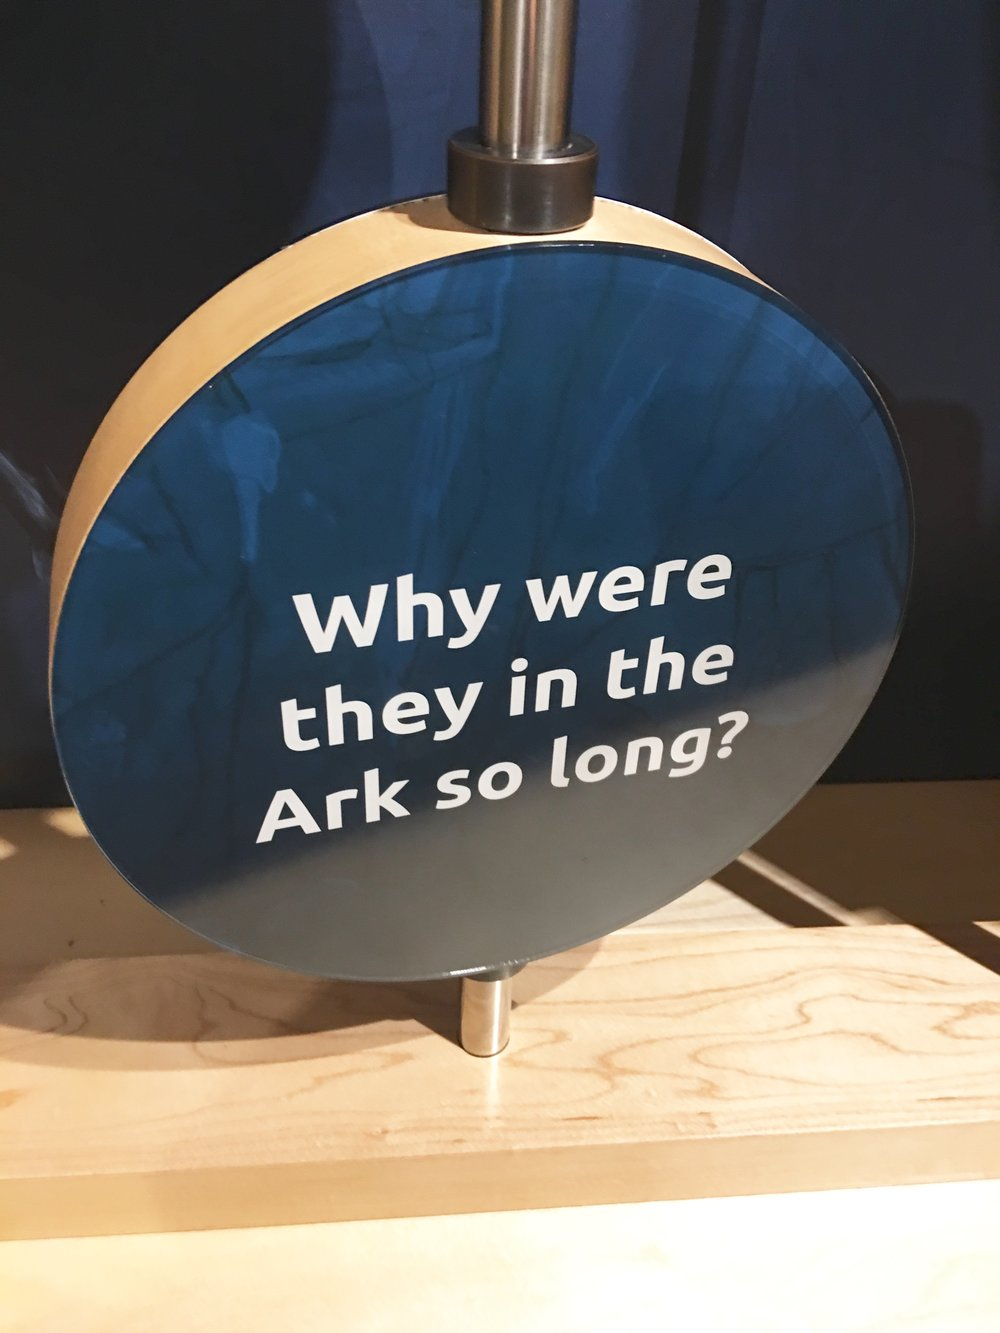 When we went to the Ark this summer in KY, God brought my attention to a time factor in our lives. Sometimes we need to ride out the storm while other times we need to wait.